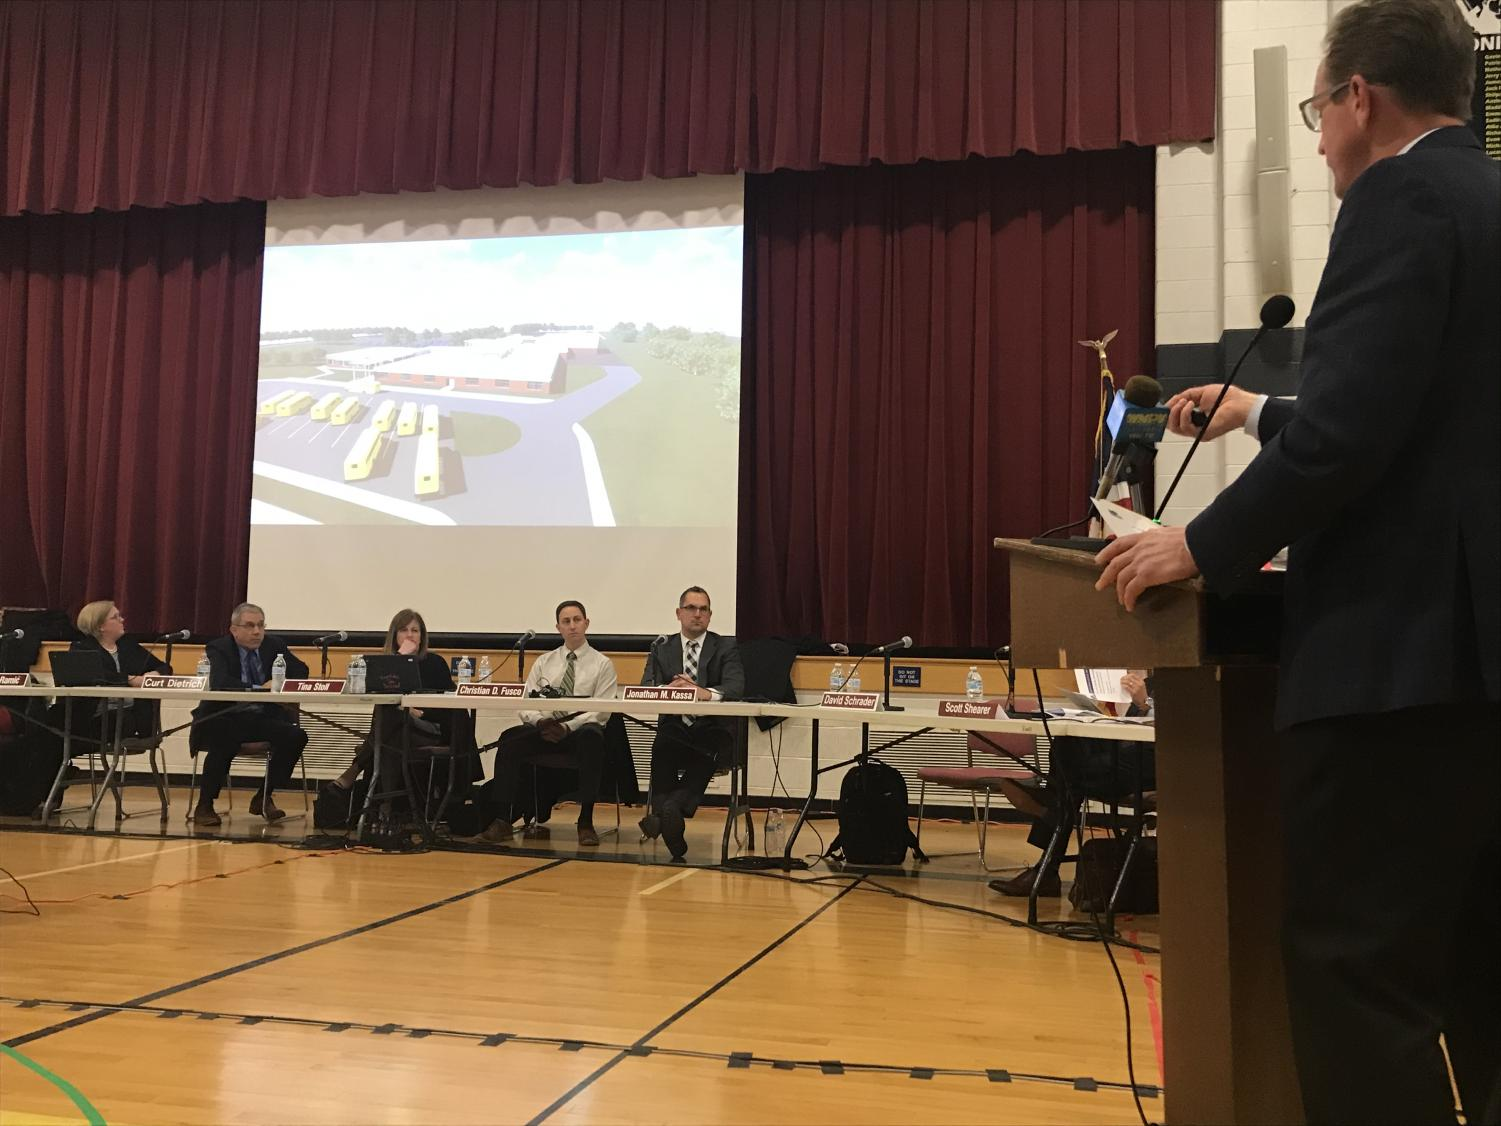 Architect David Schrader presents details of the Knapp renovation project to the North Penn School Board.